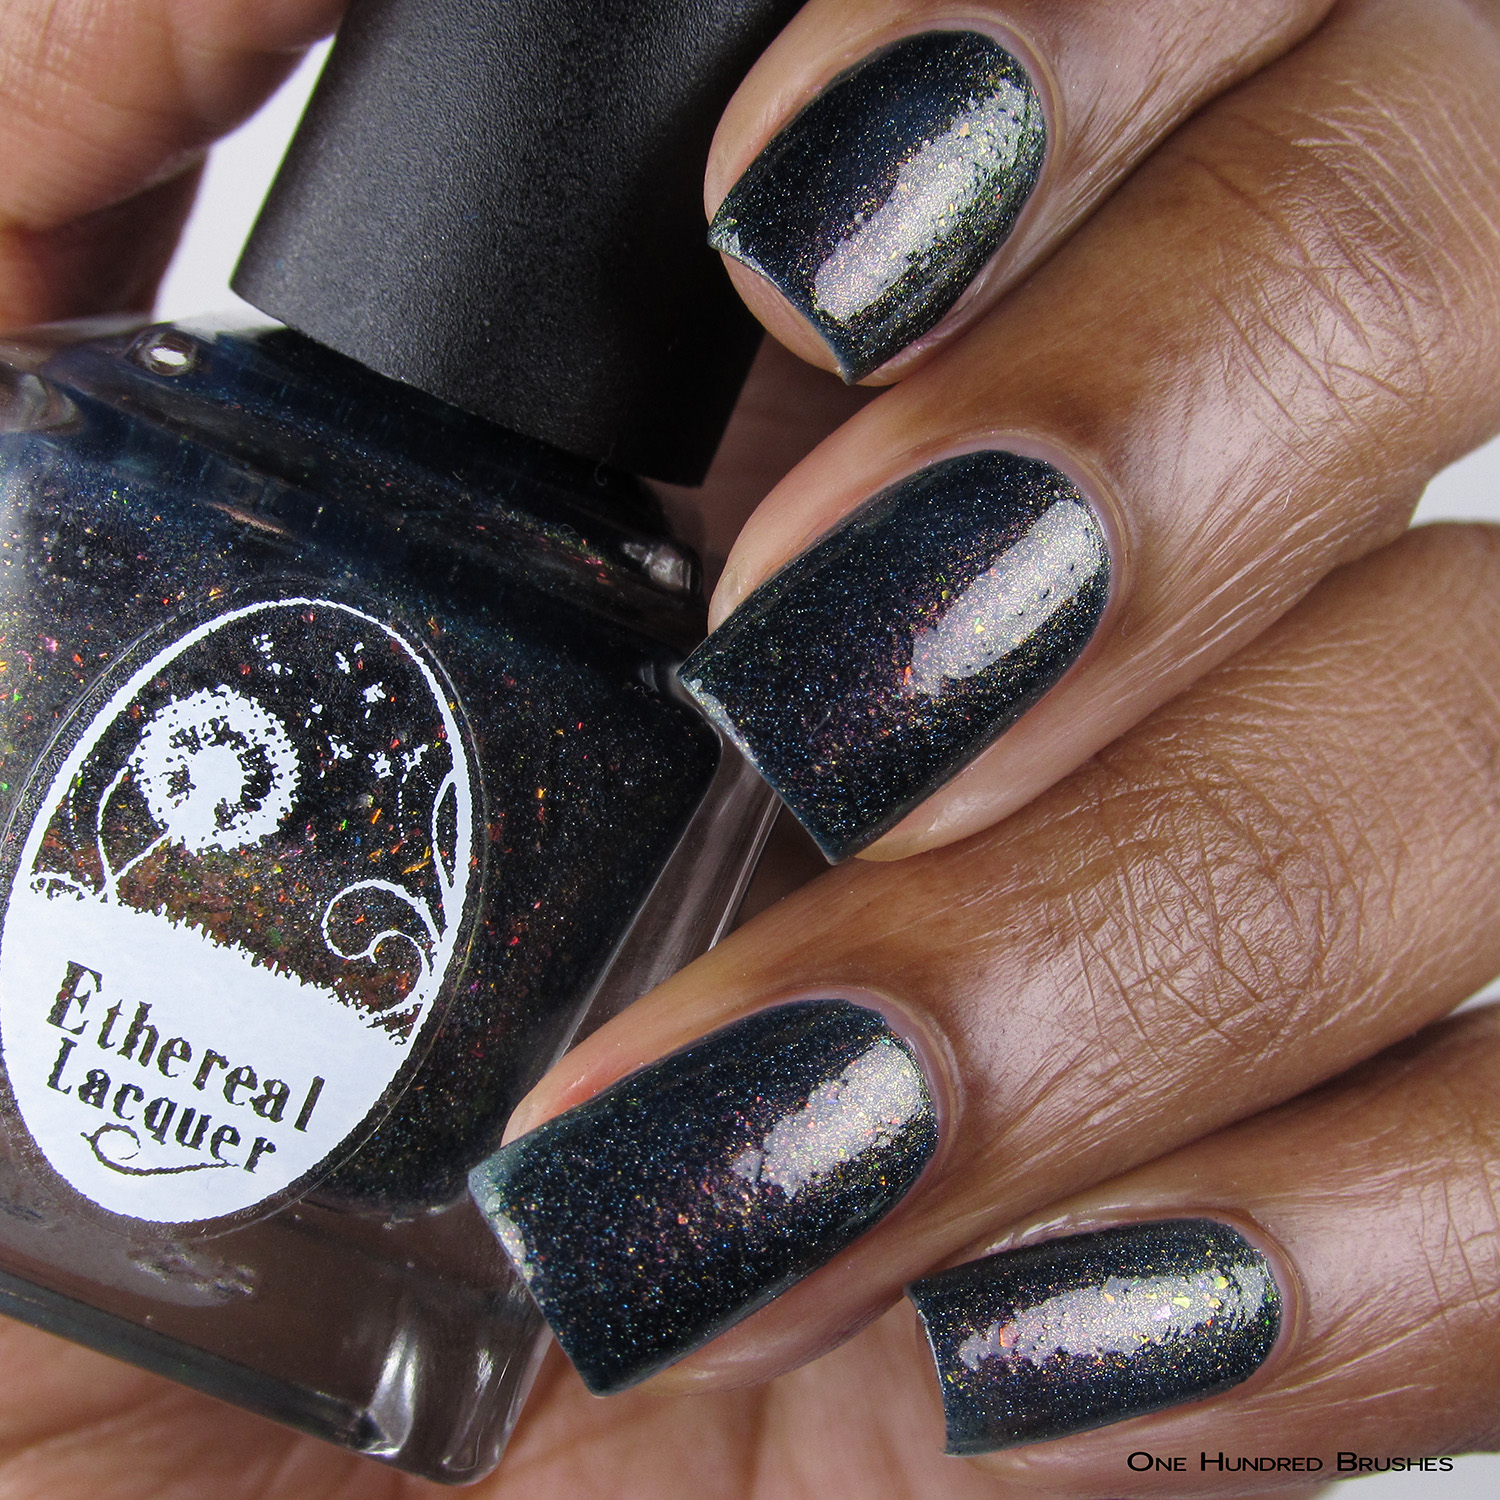 Feed Me Seymour! - Ethereal Lacquer - PPU Aug 2018